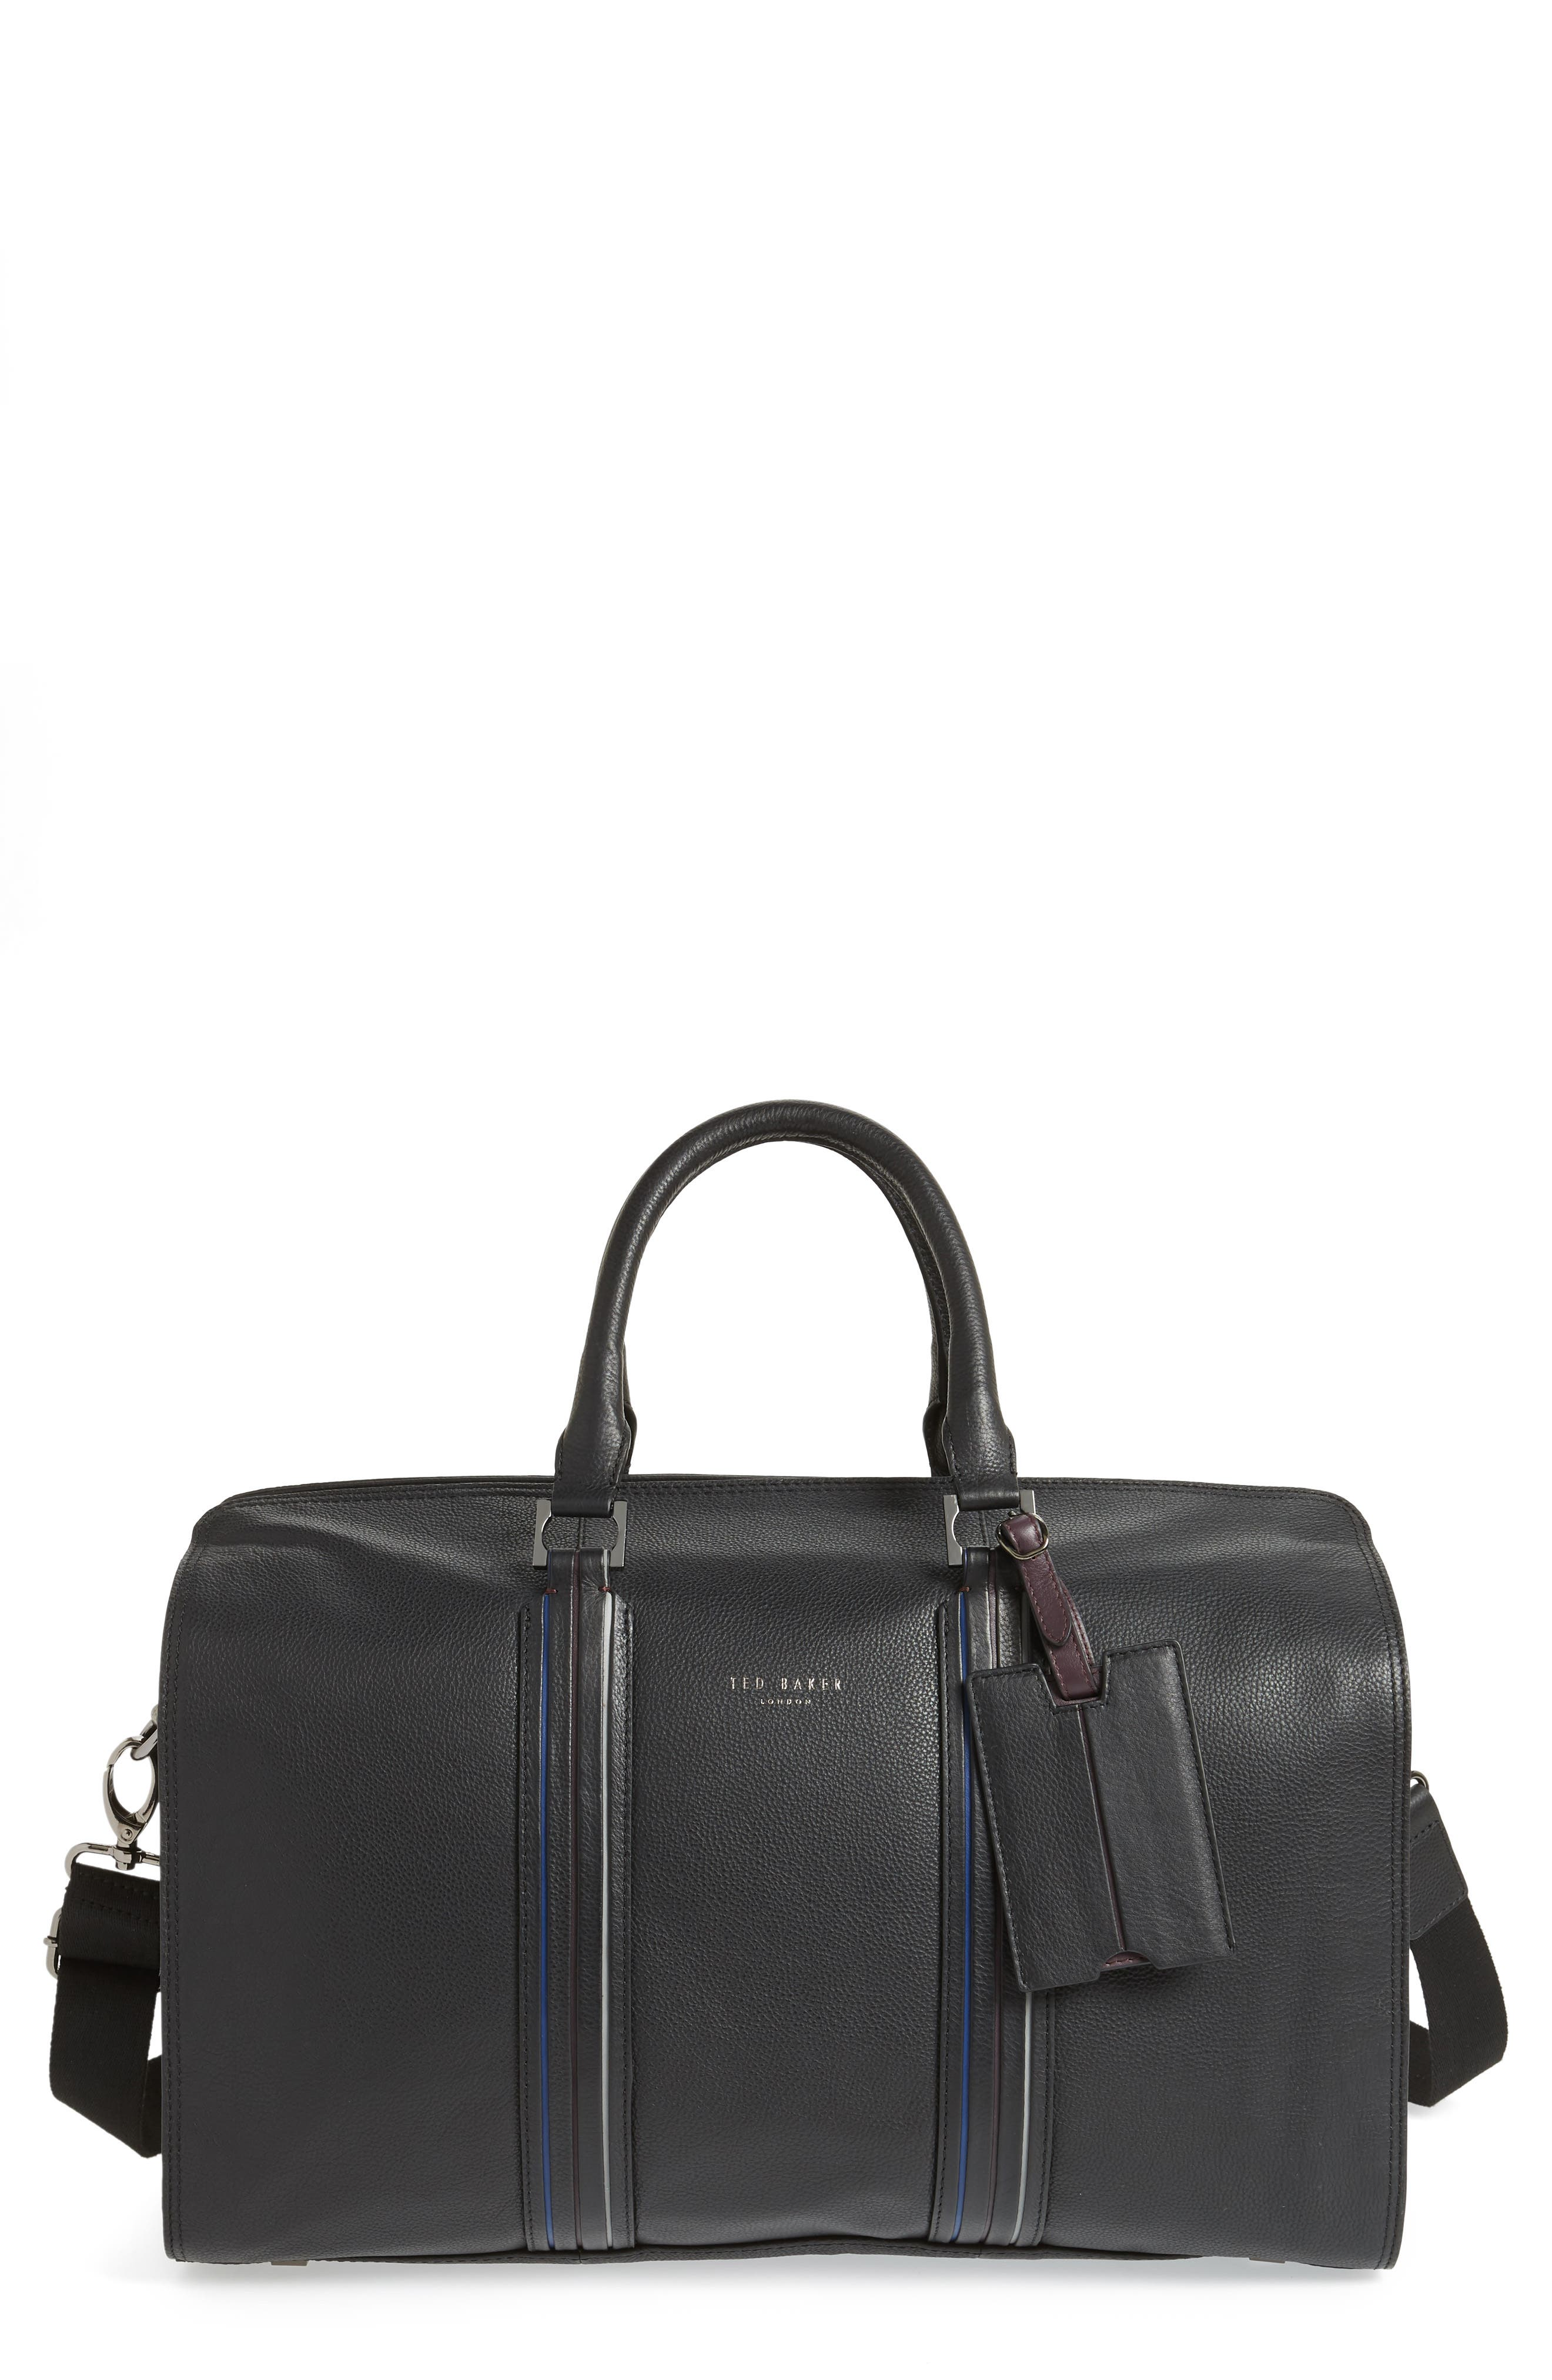 TED BAKER LONDON Geeves Stripe Leather Duffel Bag, Main, color, 001